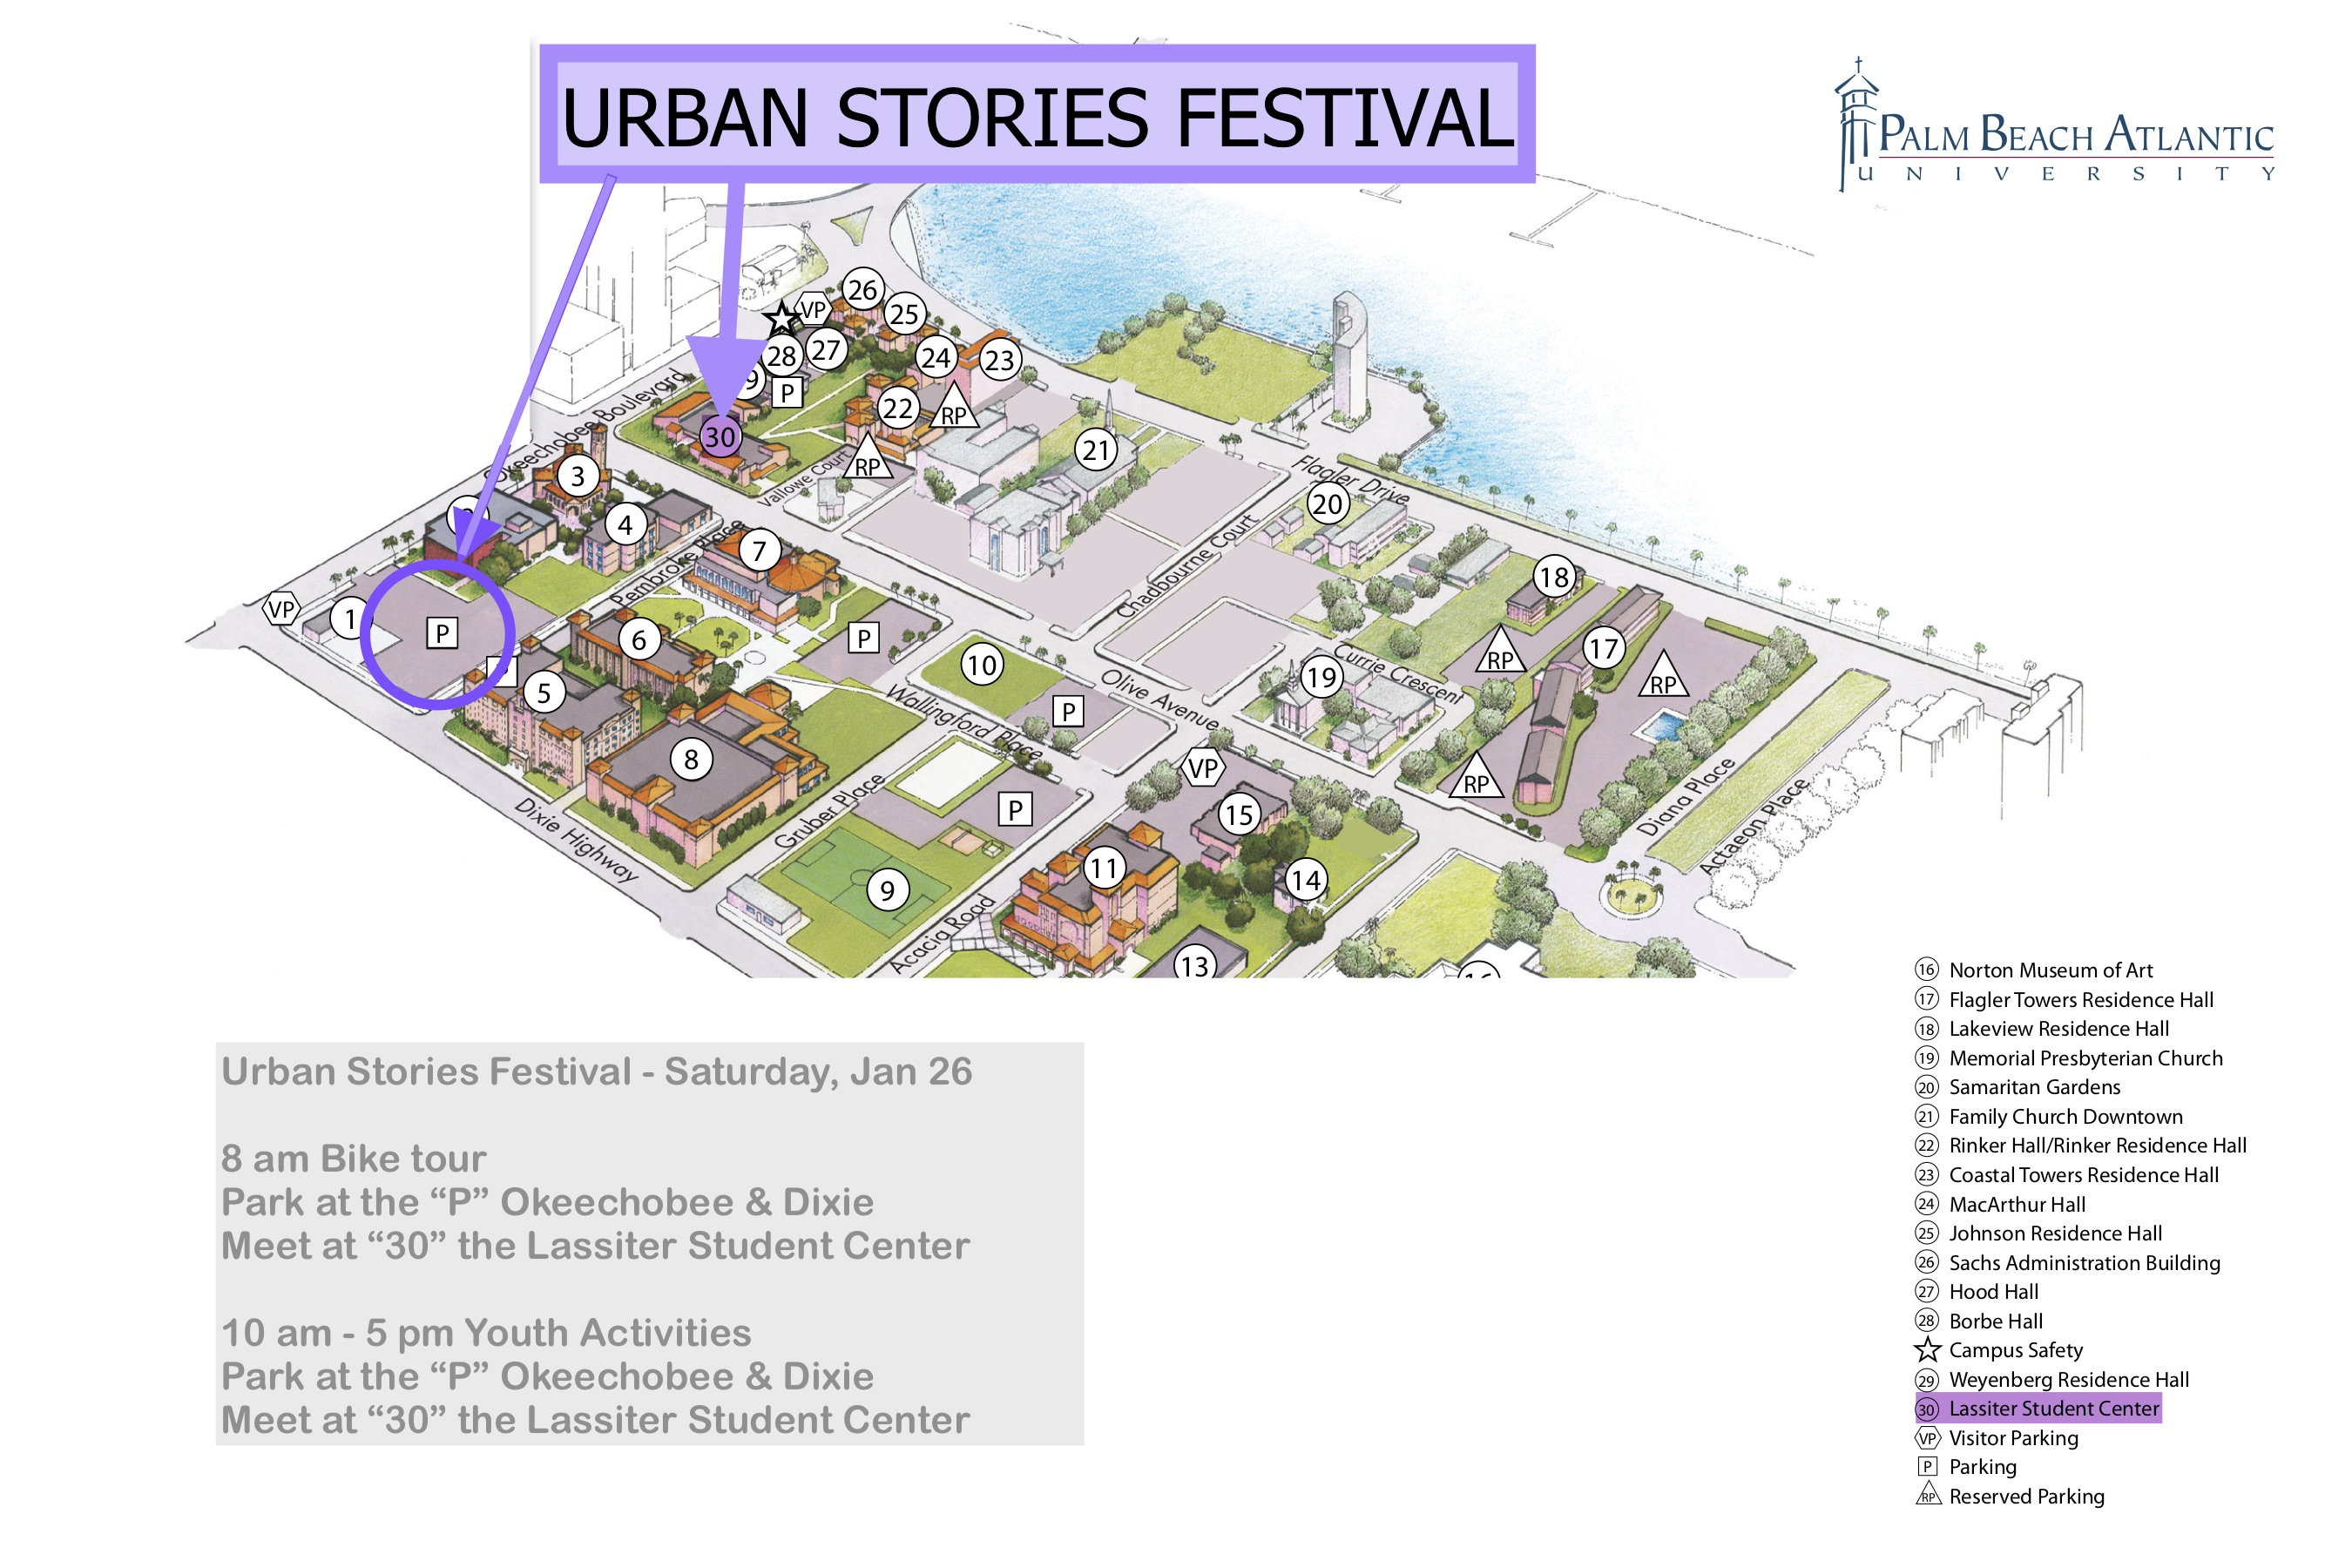 Urban Stories Parking & Meetup Map